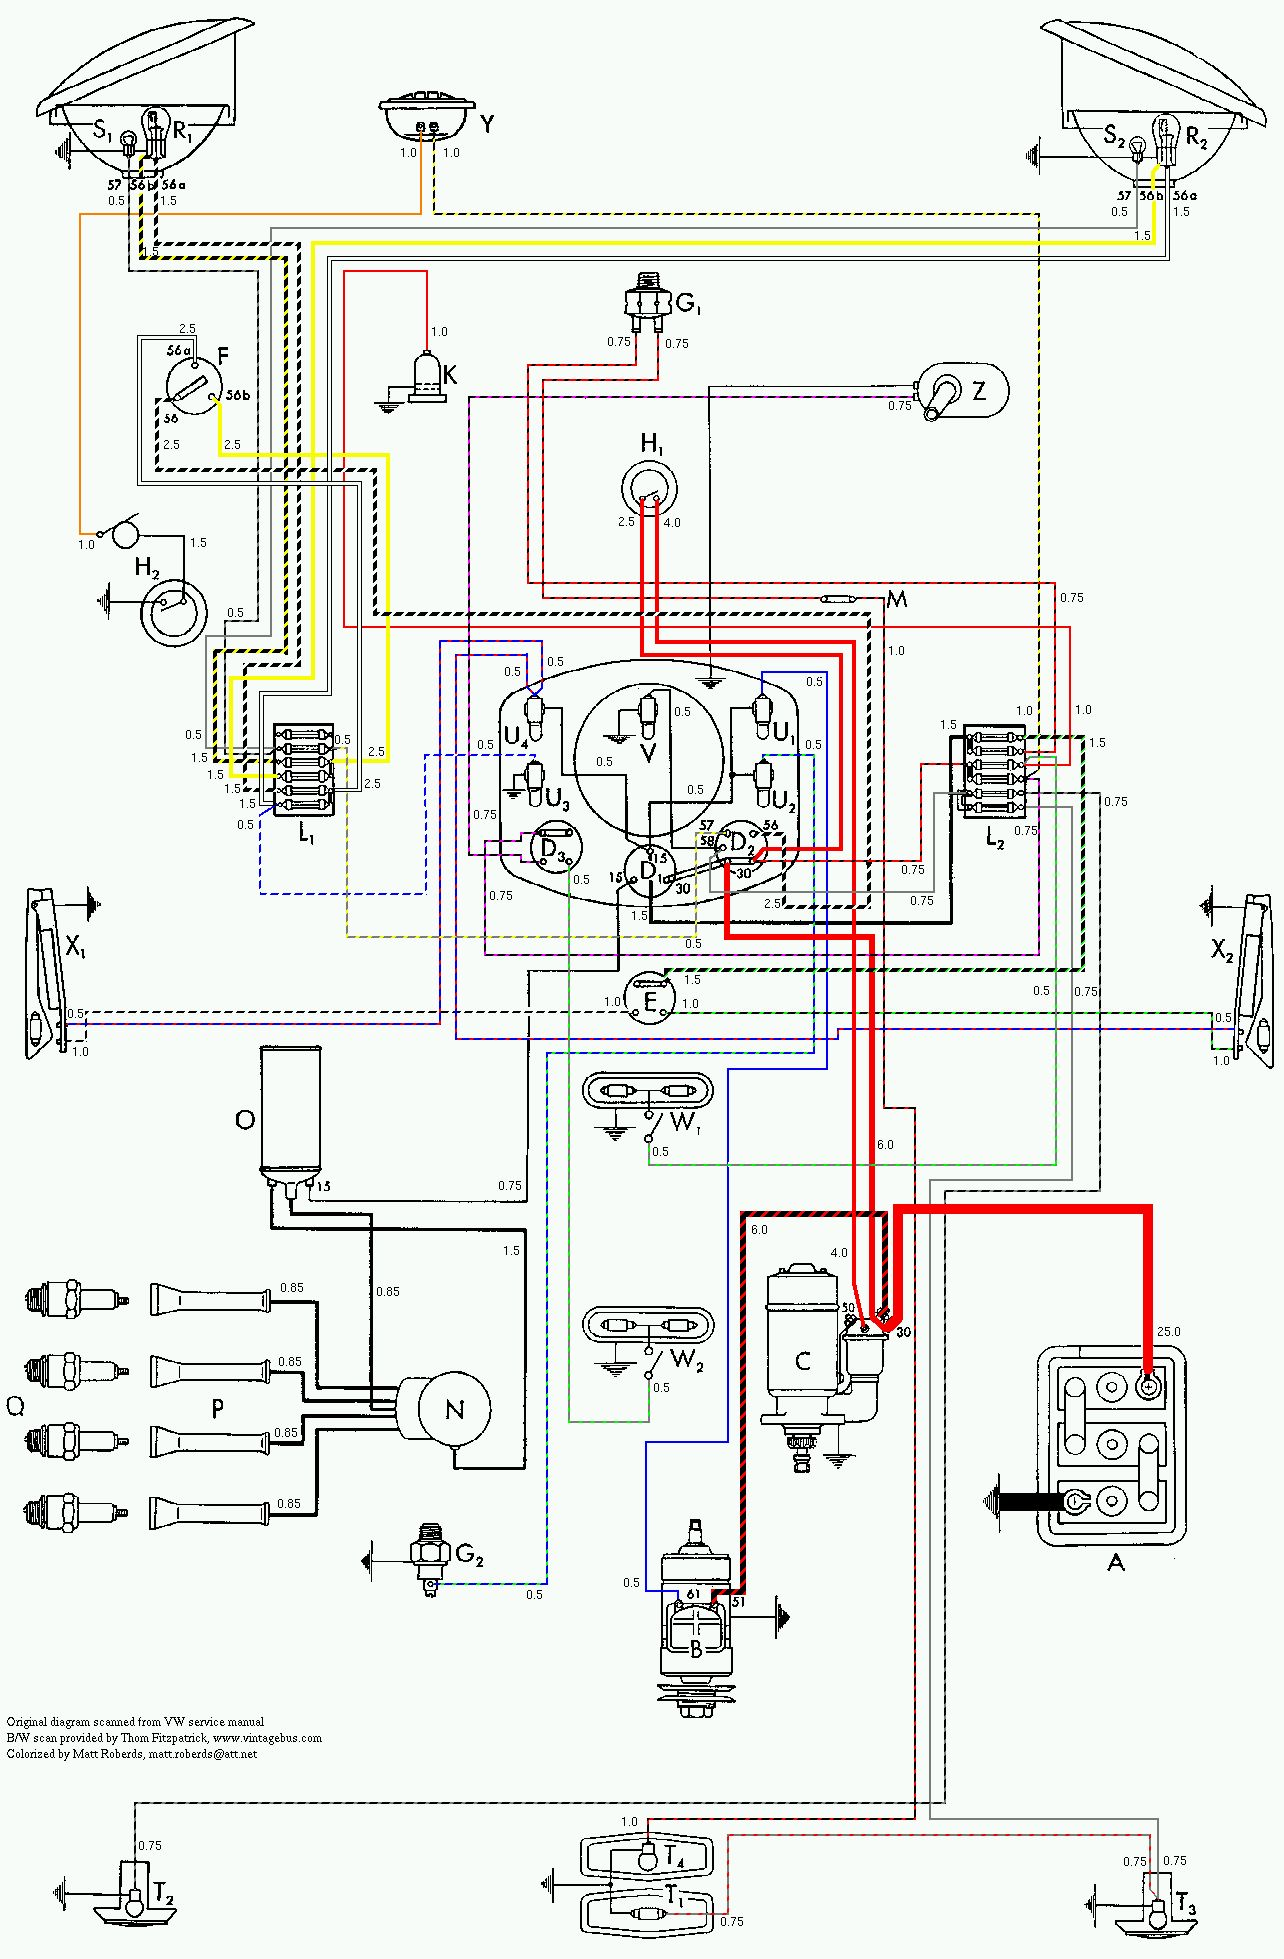 1126890 65 Ford F100 Wiring Diagrams also 995676 Dire Need Of Help Blinkers Wiring also 1971 Toyota Land Cruiser Wiring Diagrams moreover 340795896786797382 additionally Painless Wiring 30805 Gm Steering Painless Wiring 30201 Hot Shot Relay Painless Wire Harness Instructions Painless Wiring Diagram. on 1958 chevy tail light wiring